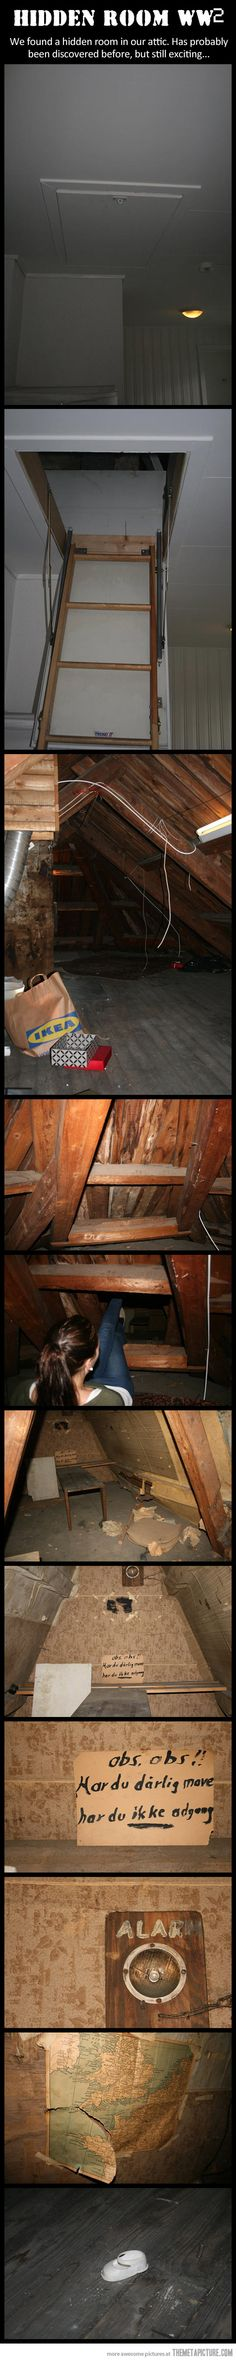 A hidden room from not weird or creepy, very interesting Hidden Rooms, Creepy Stories, Secret Rooms, Interesting History, Interesting Stuff, Awesome Stuff, Abandoned Places, Fun Facts, Funny Pictures